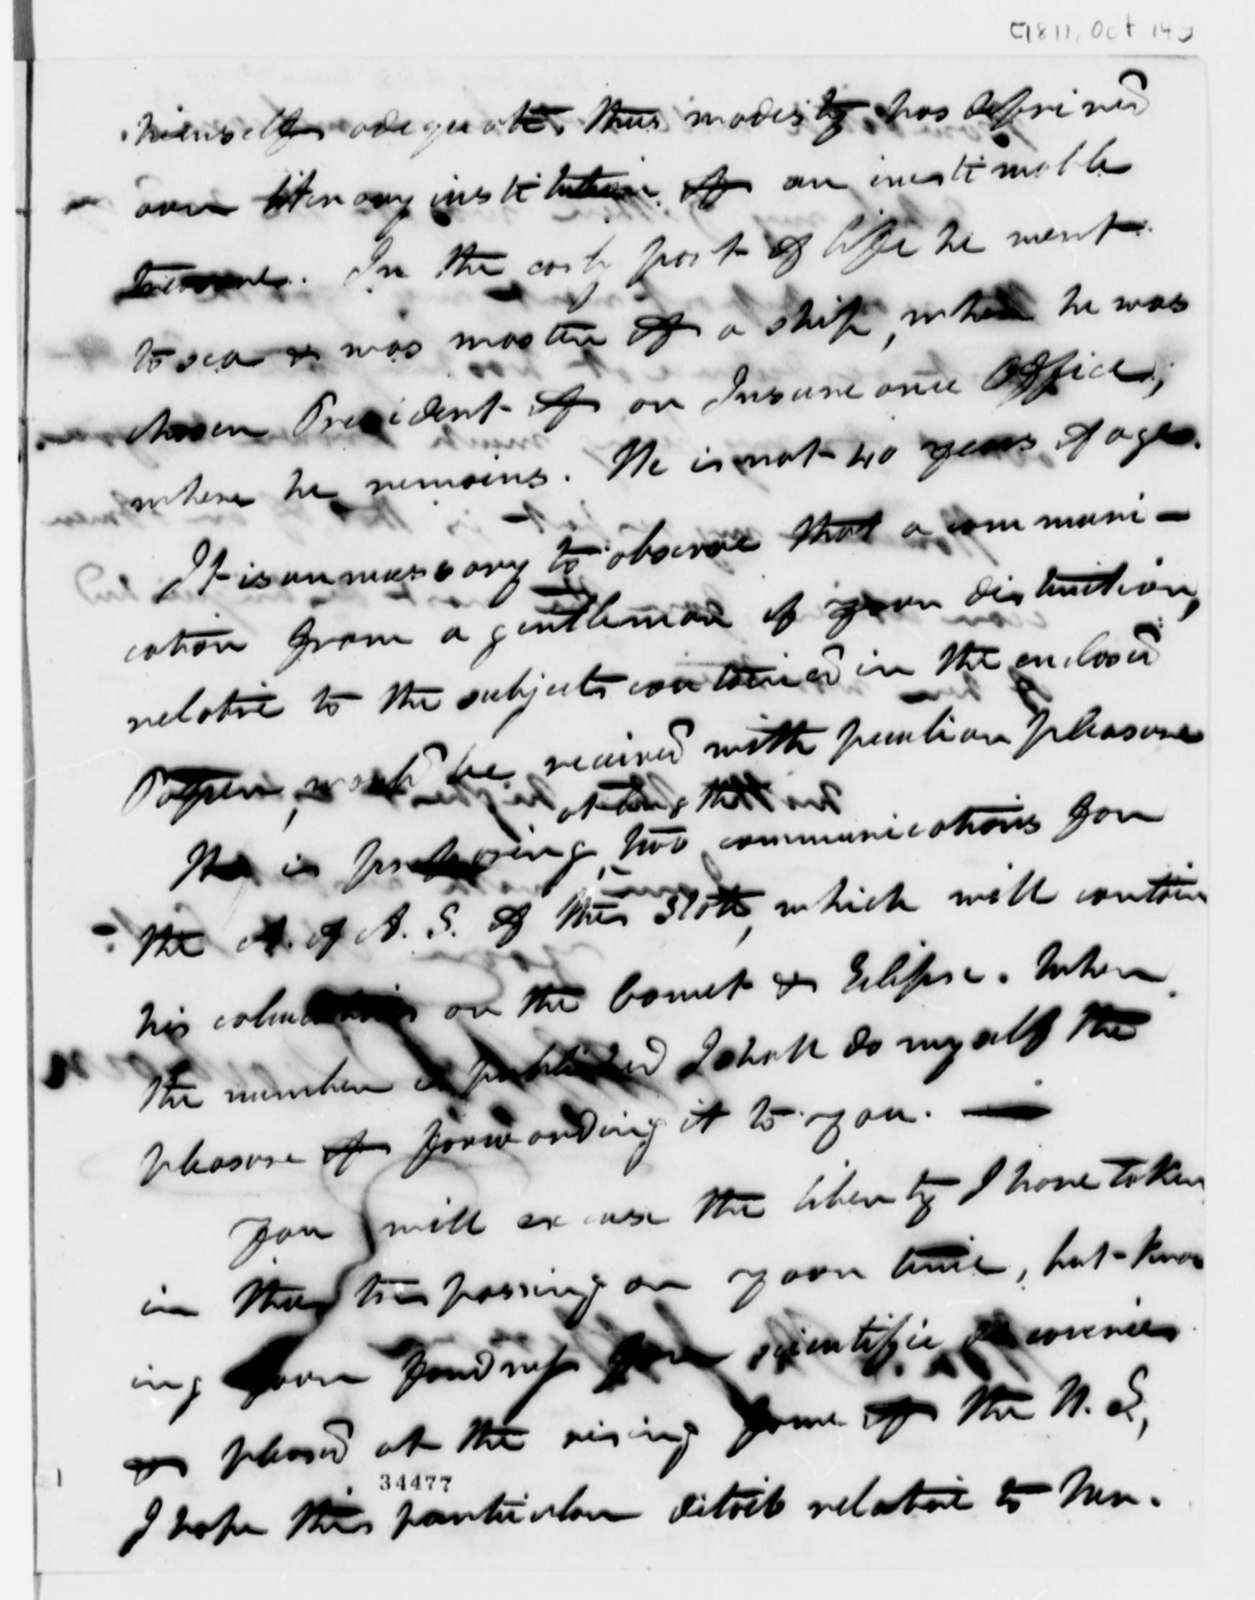 Henry A. S. Dearborn to Thomas Jefferson, October 14, 1811, Bowditch Circular Enclosed